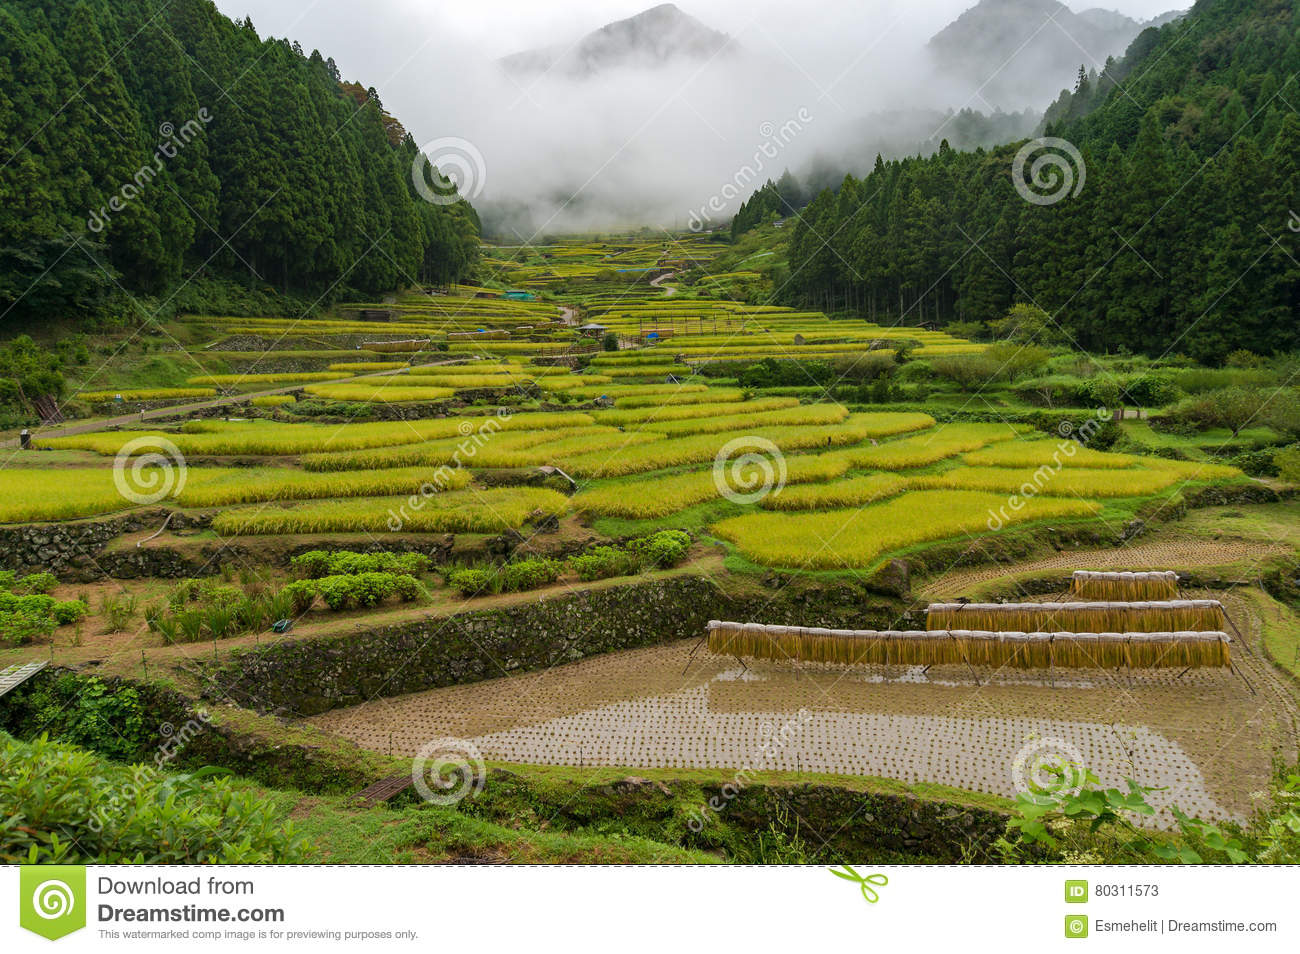 Japanese Traditional Agriculture Landscape Of Terrace Rice Paddy